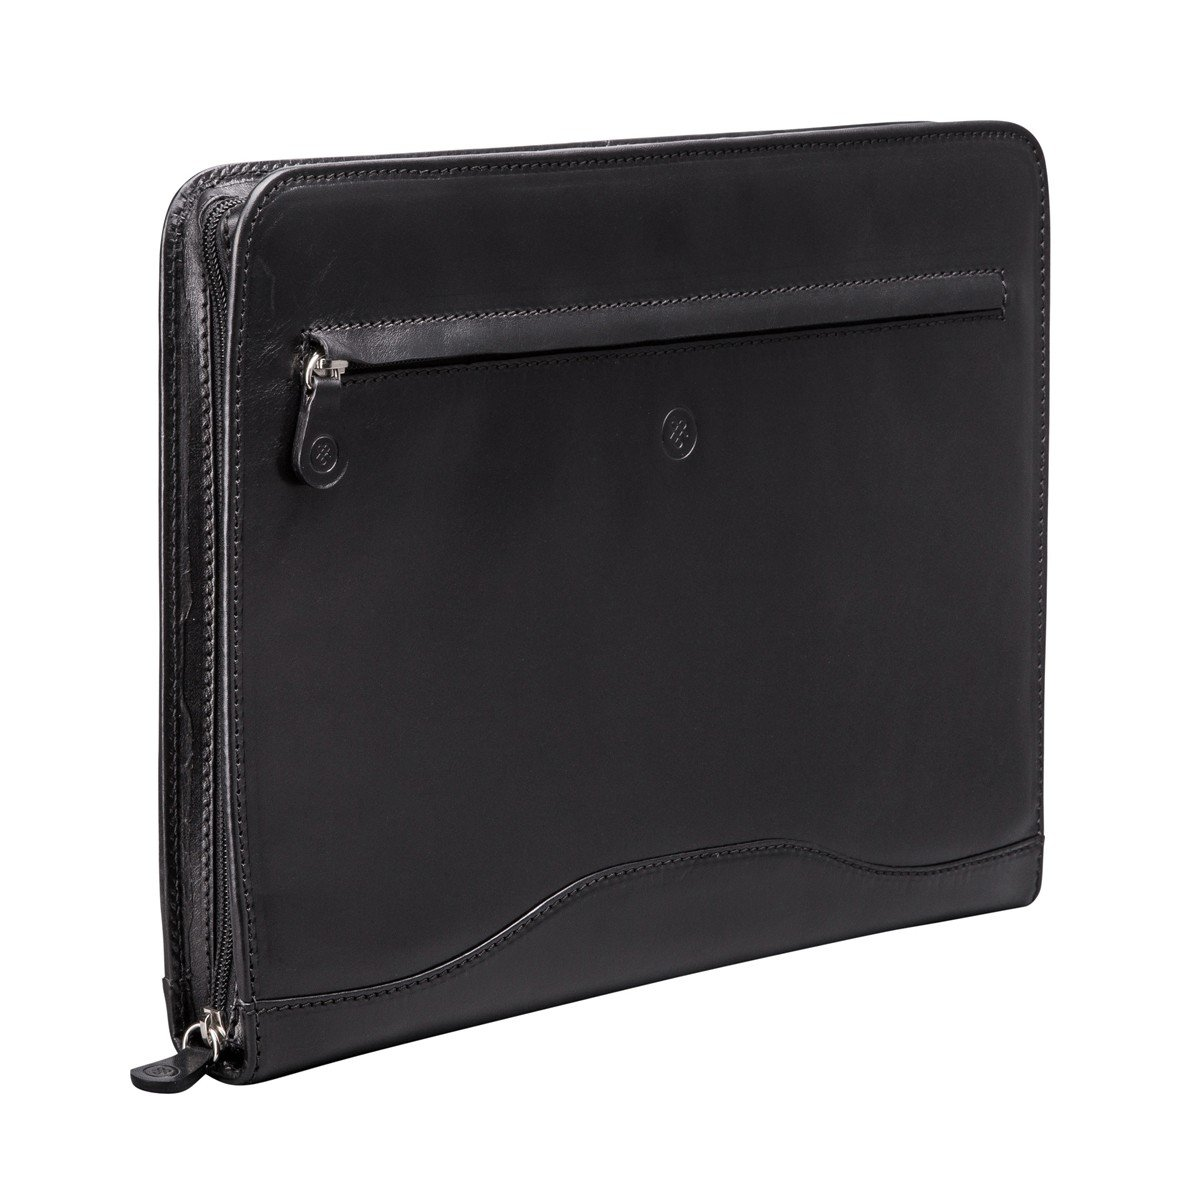 Maxwell Scott Personalized Black Leather Conference Folder with Ringbinder (The Veroli) by Maxwell Scott Bags (Image #3)